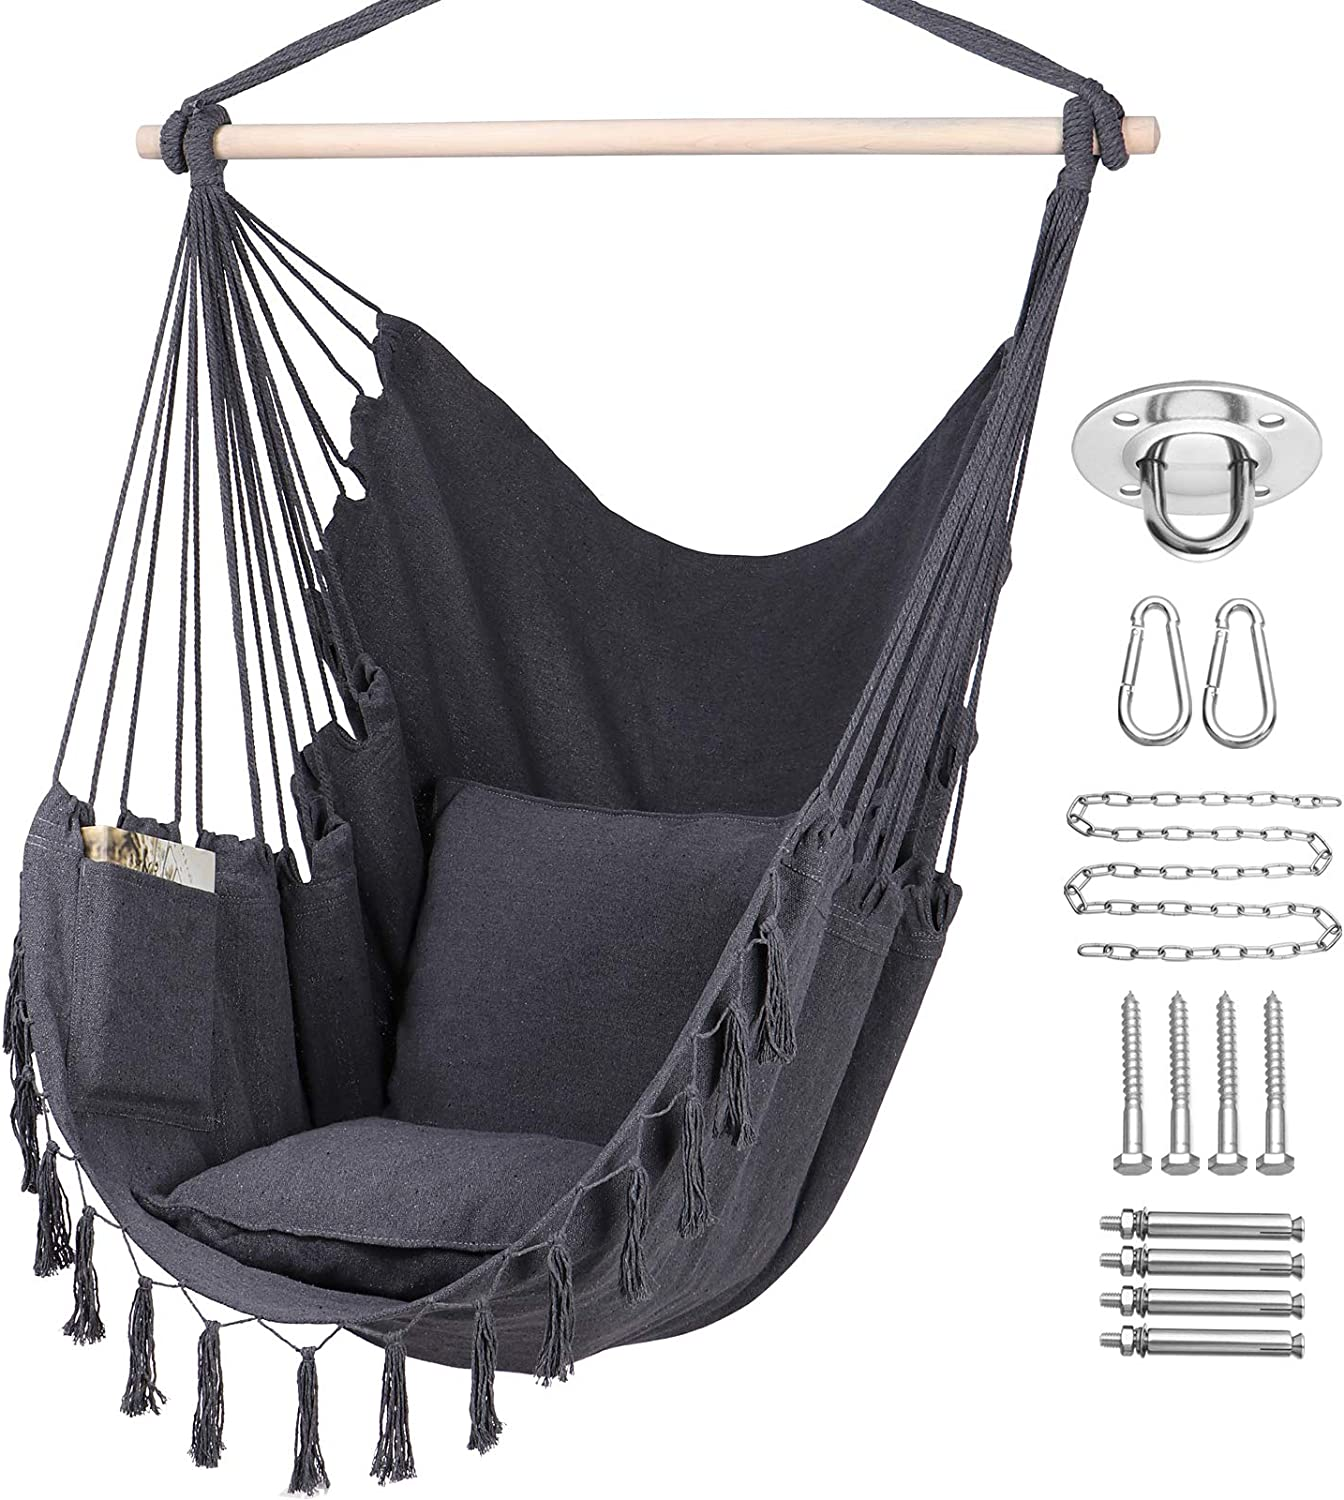 Amazon Com Y Stop Hammock Chair Hanging Rope Swing Max 330 Lbs 2 Cushions Included Large Macrame Hanging Chair With Pocket Cotton Weave For Superior Comfort Durability Grey Kitchen Dining